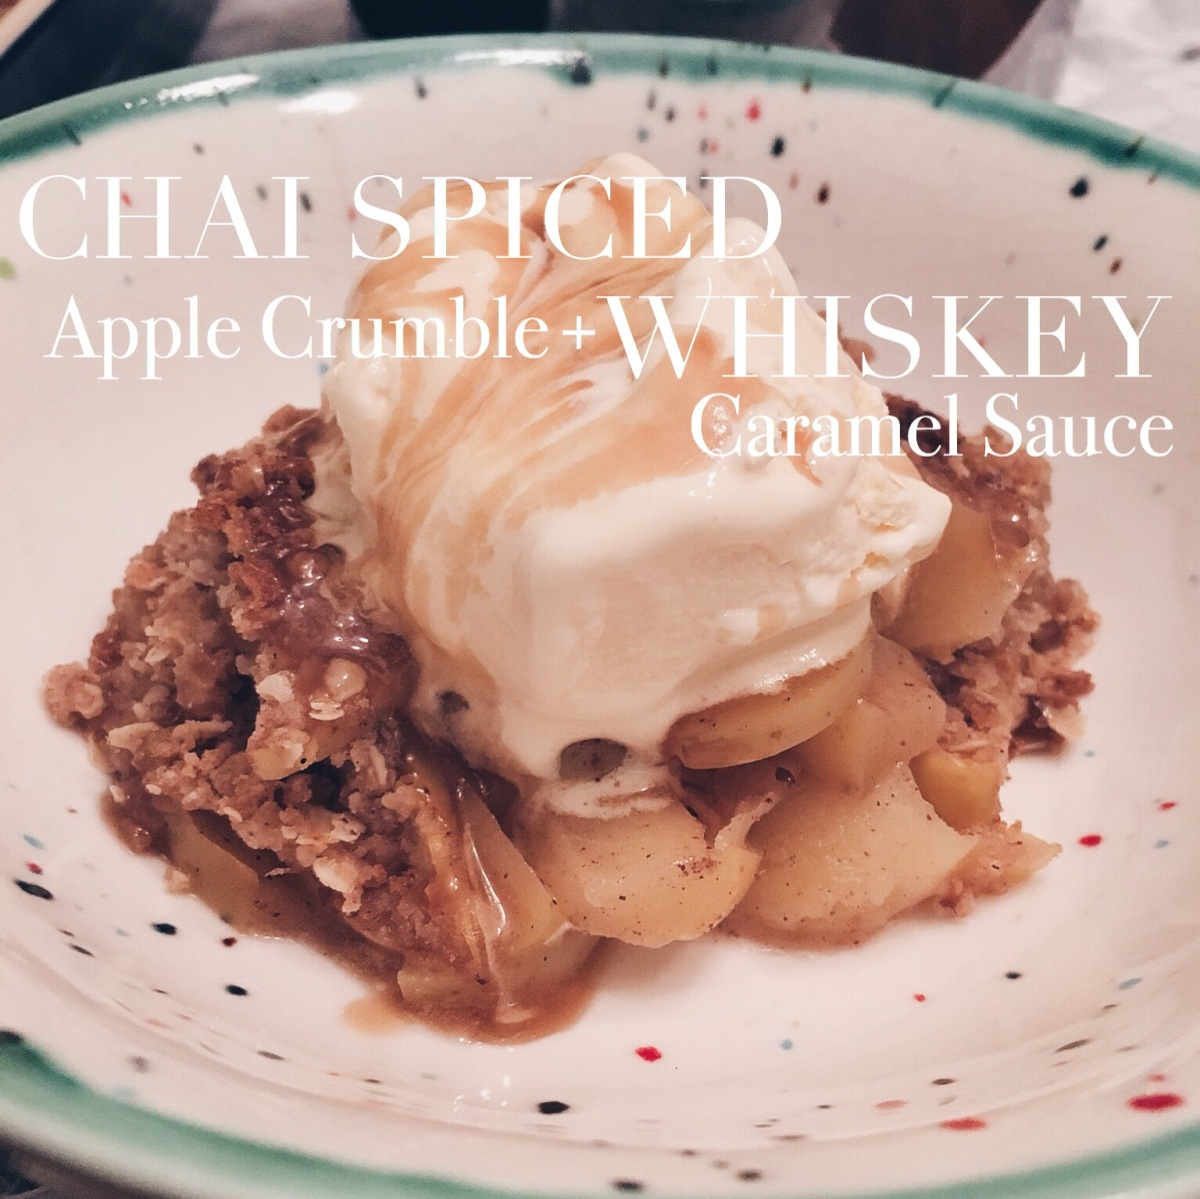 Chai Spiced Apple Crumble and Whiskey Caramel Sauce